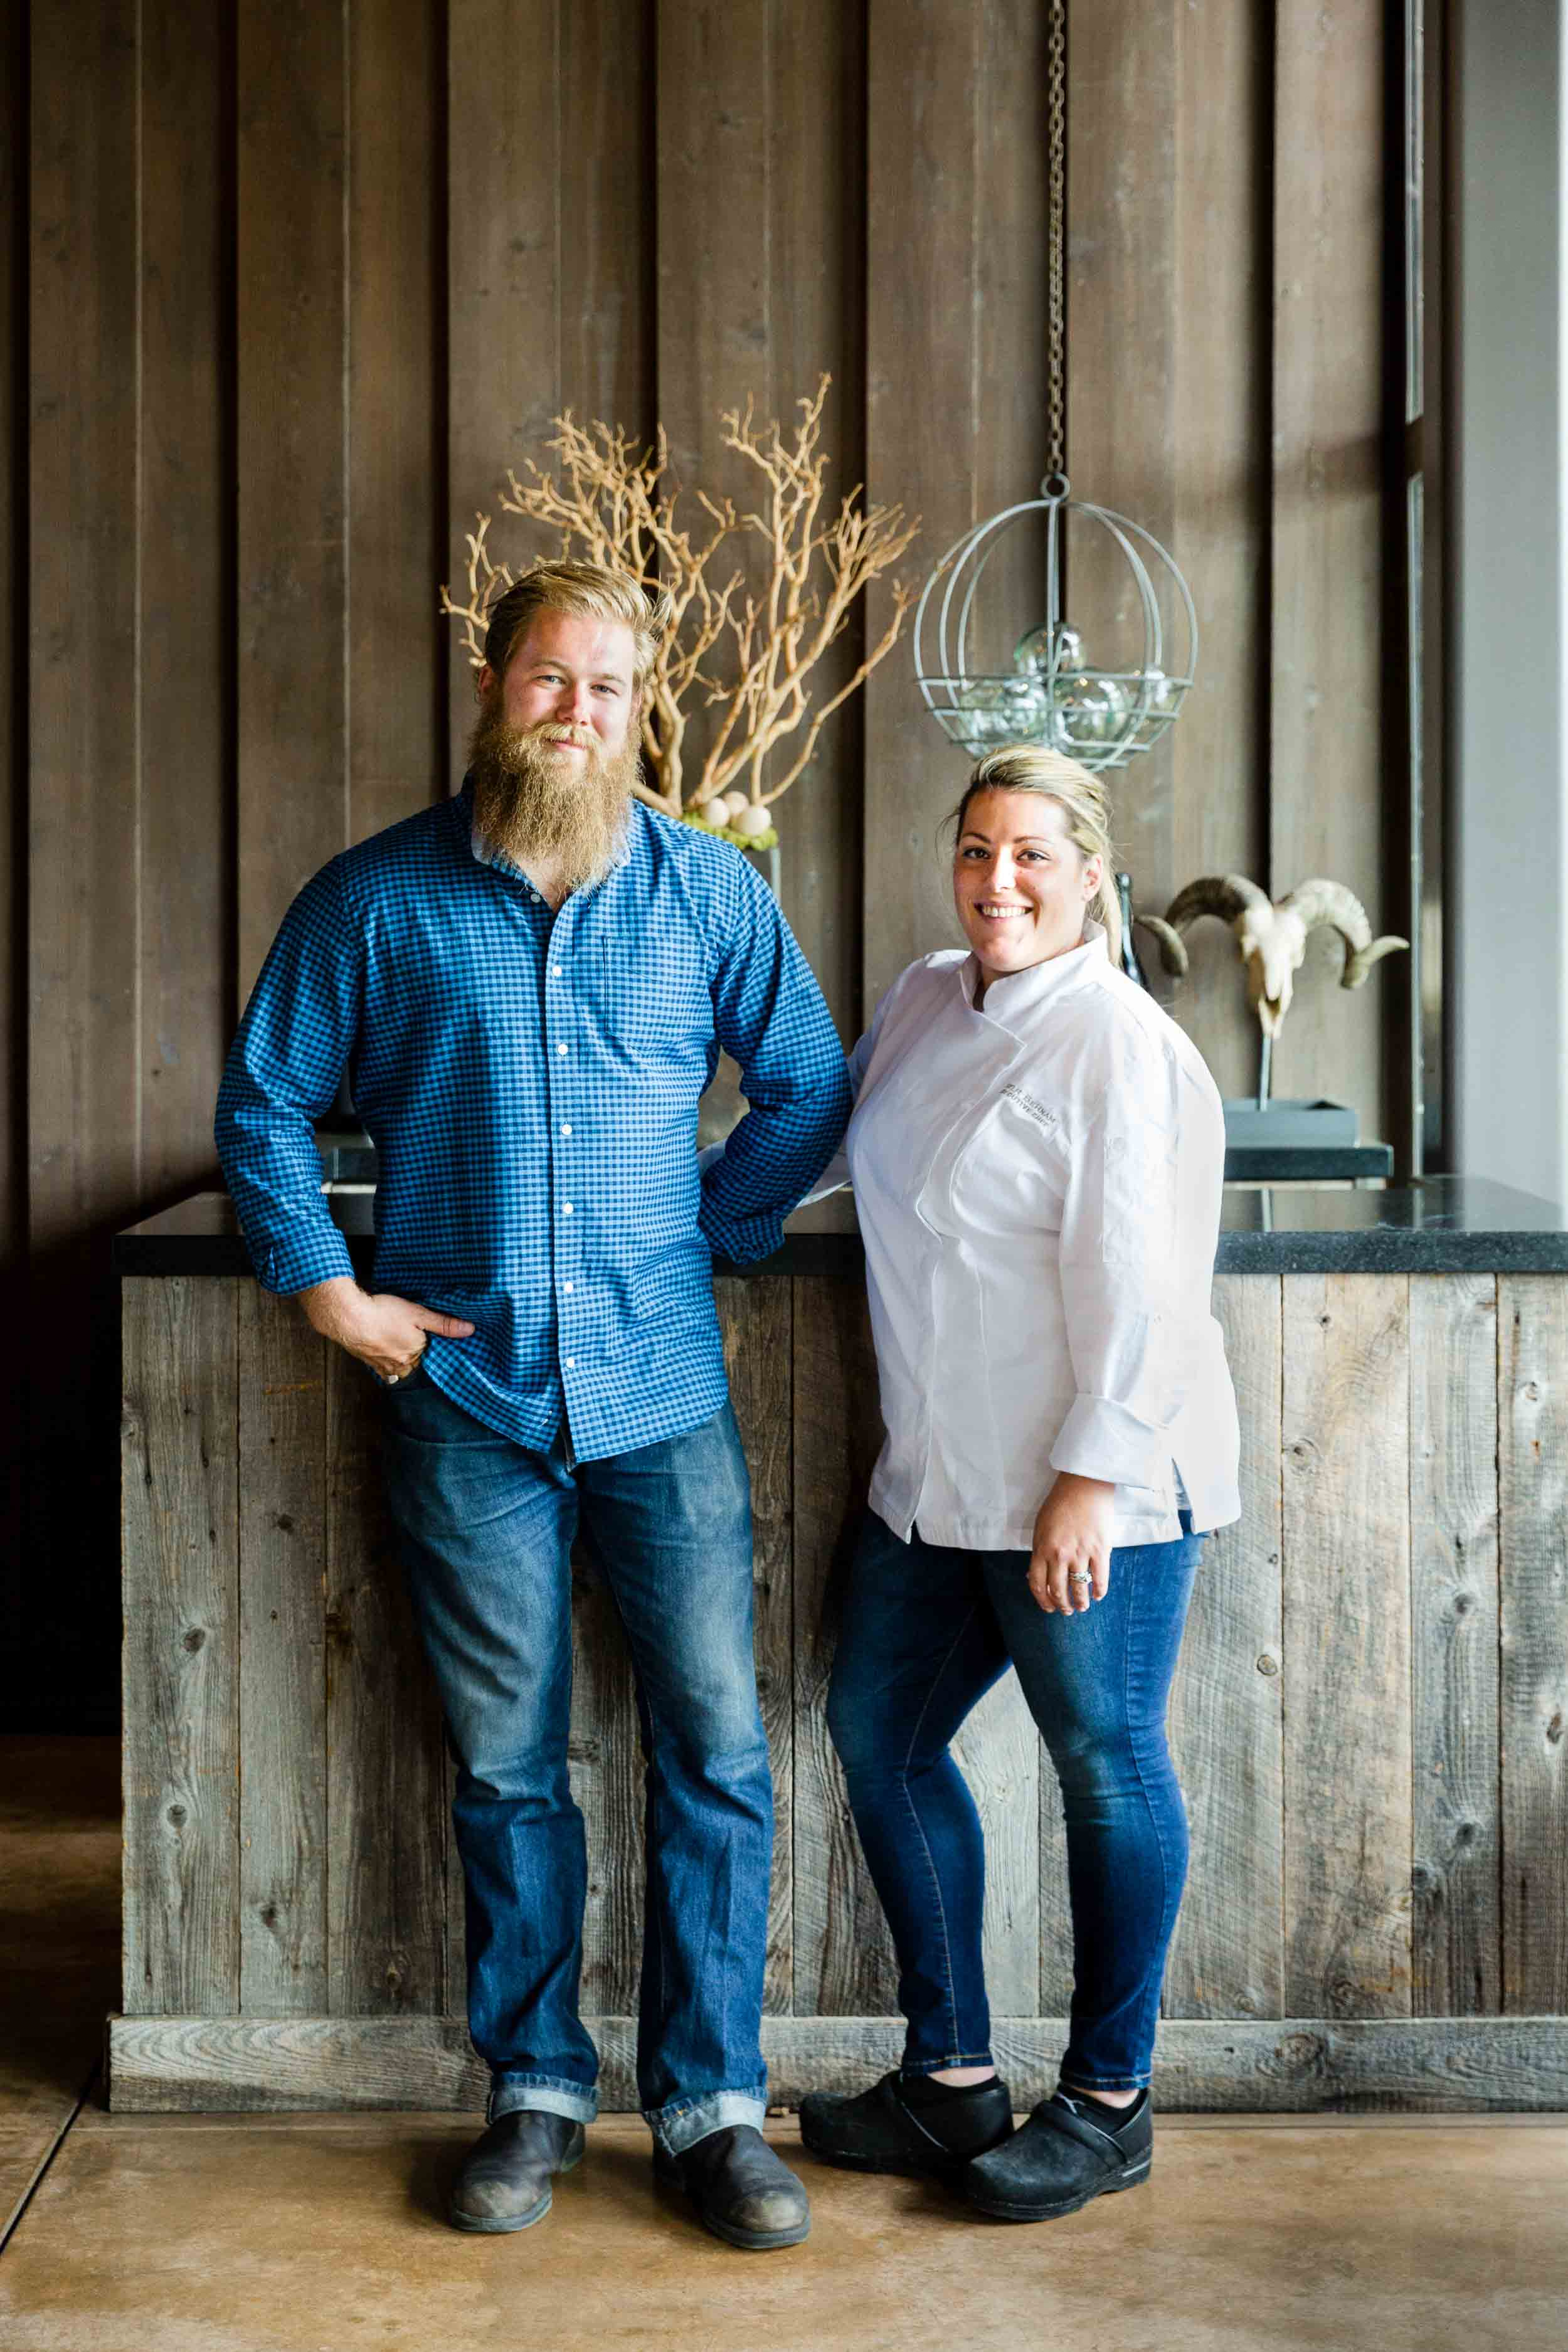 Ram's Gate winery, and Chef Talyr Benham create food and wine in Sonoma County's wine country.